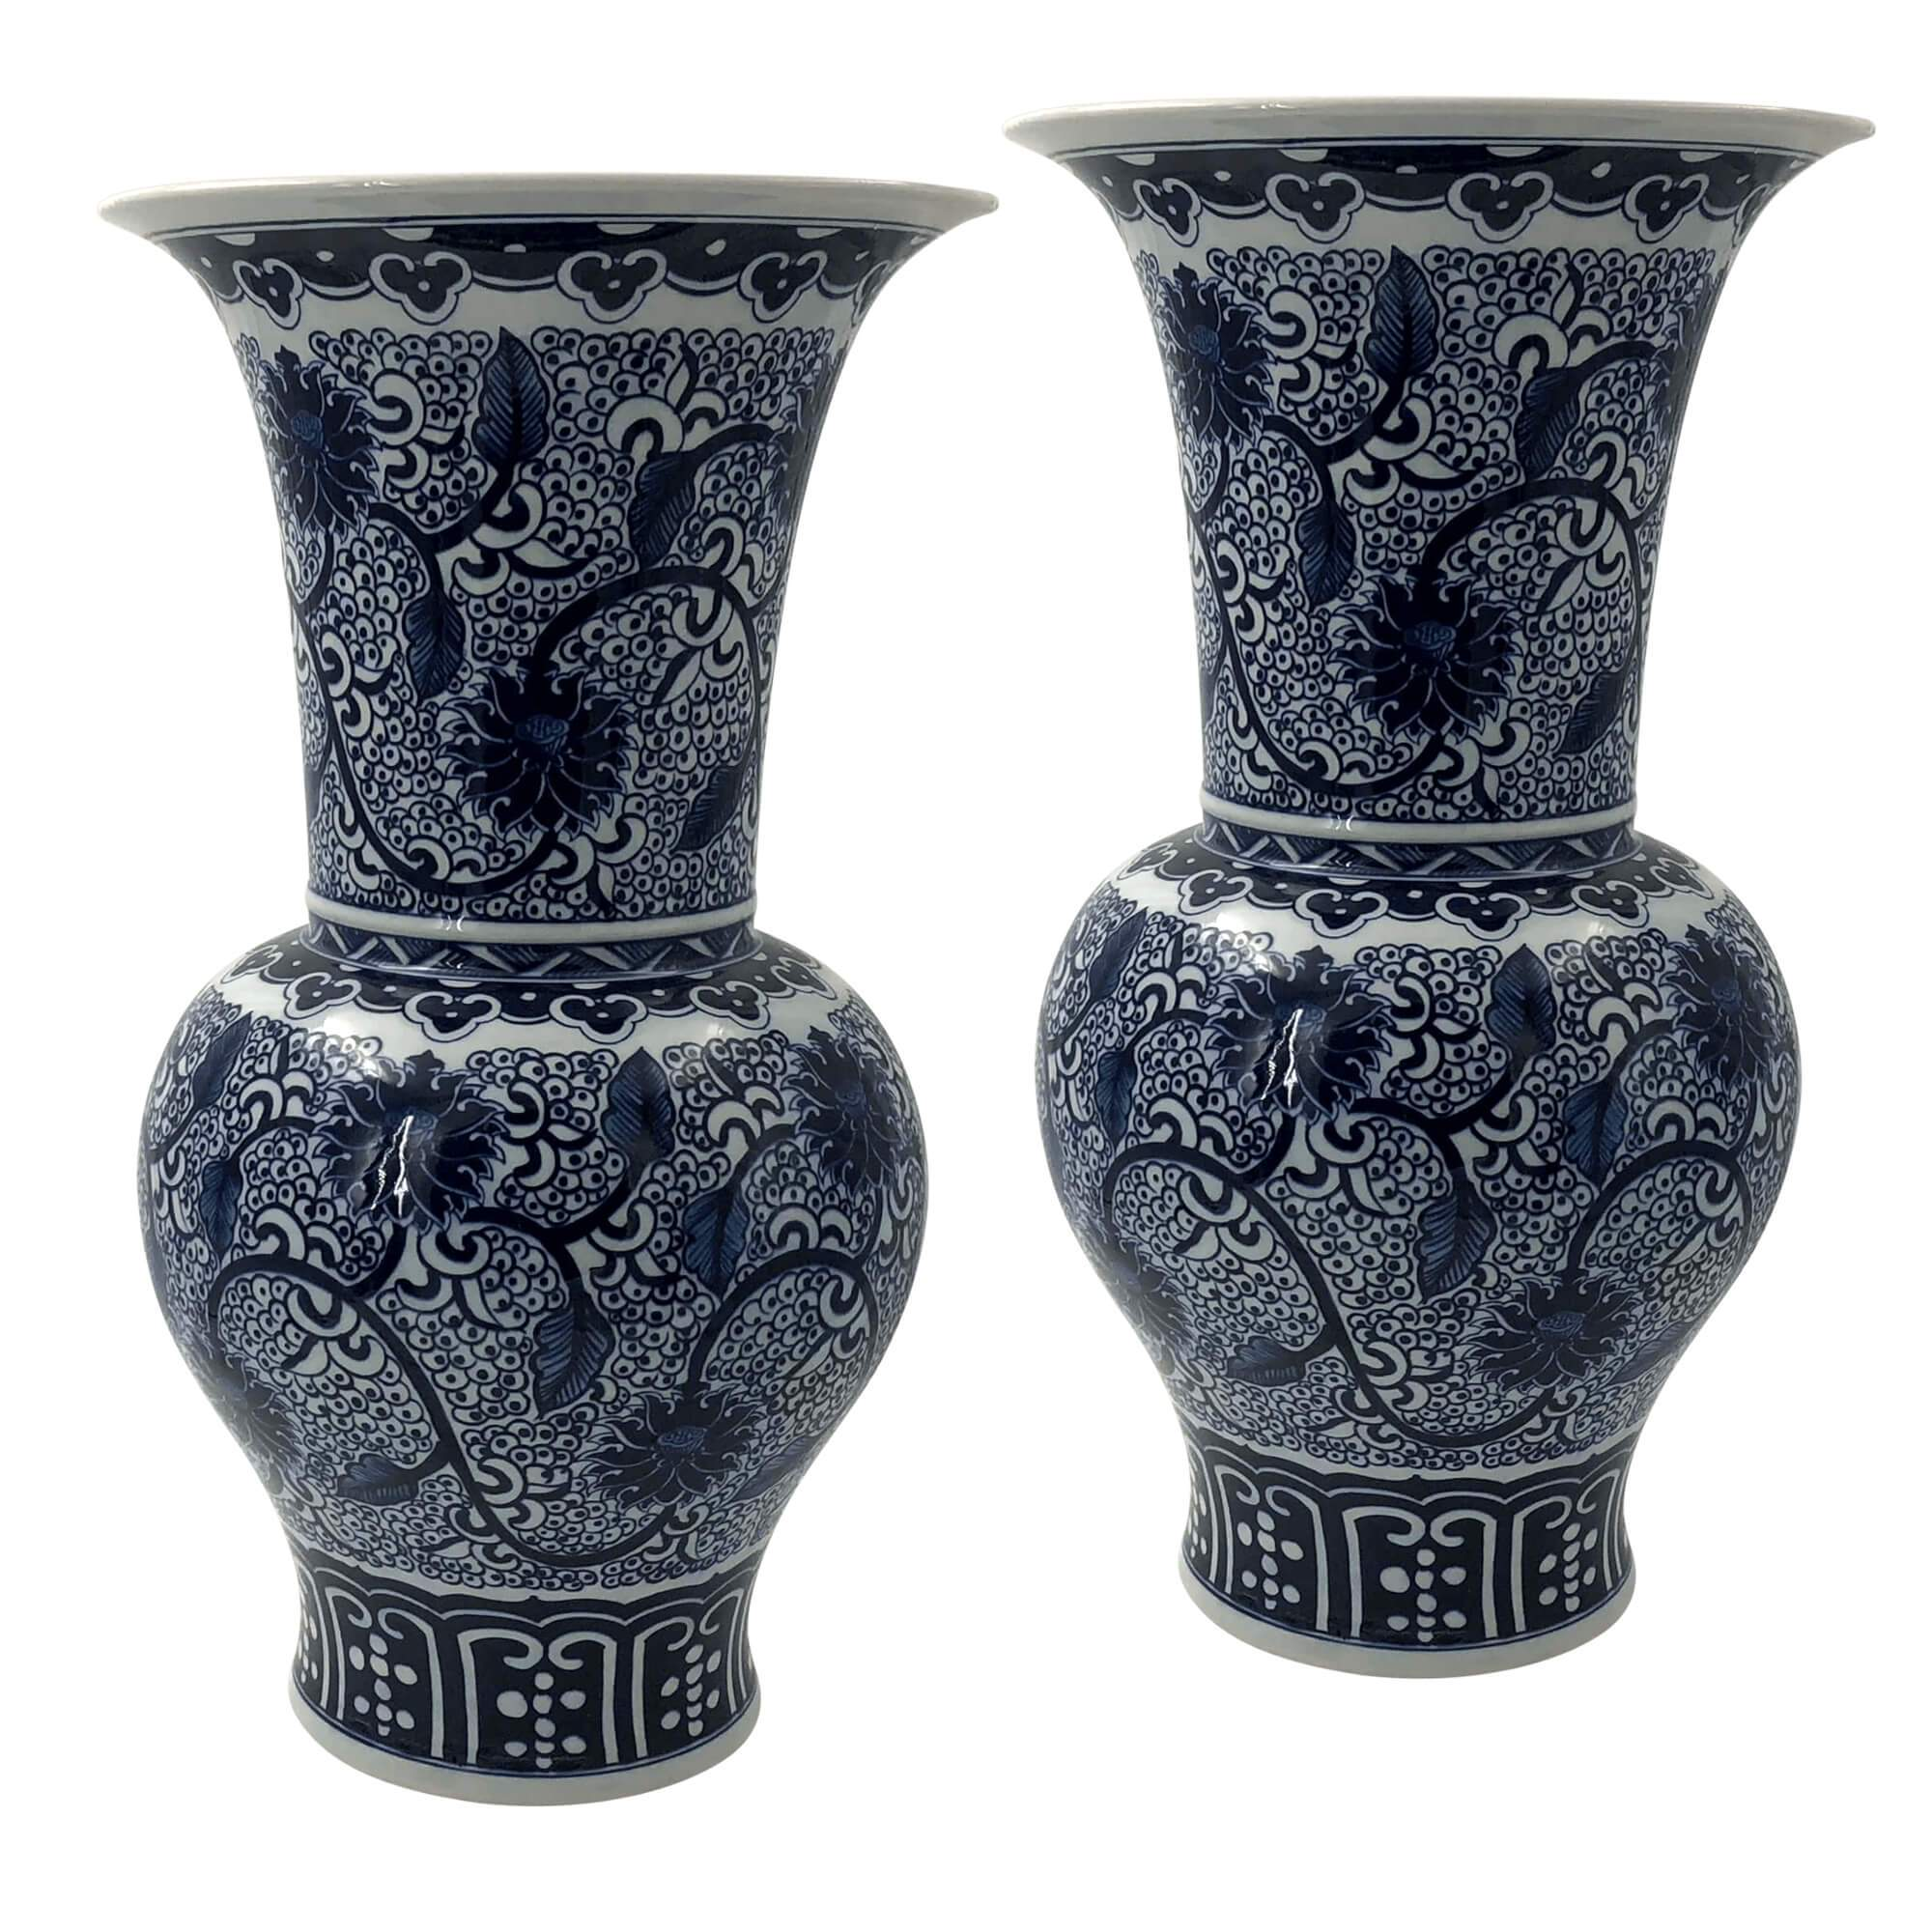 225 & Pair of Hand Painted Chinese Export Flower Vases